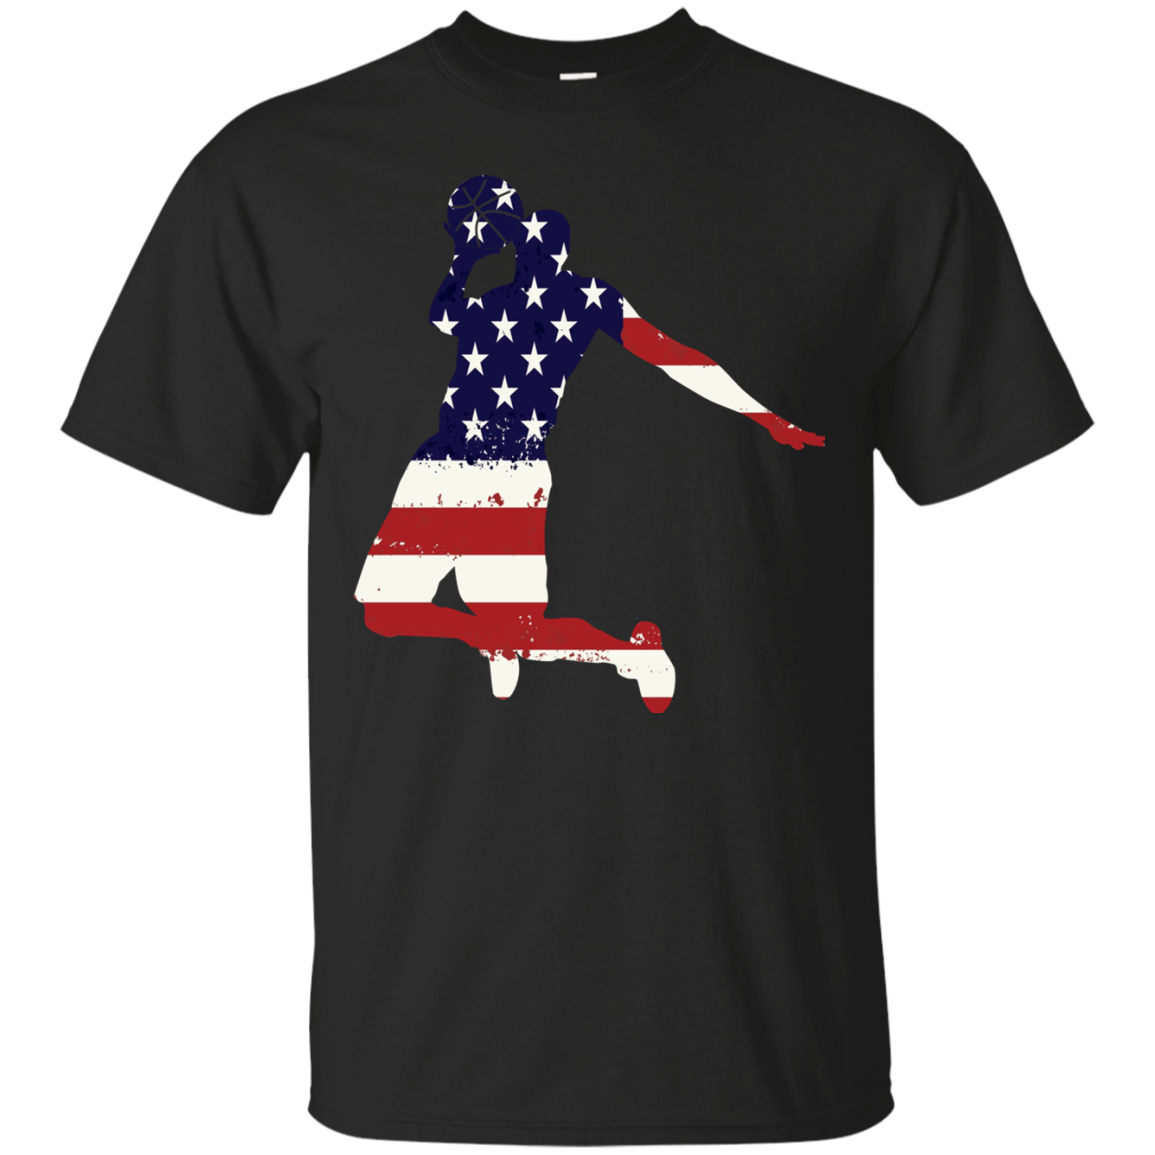 4th of July t shirt Patriotic Basketball American flag Men